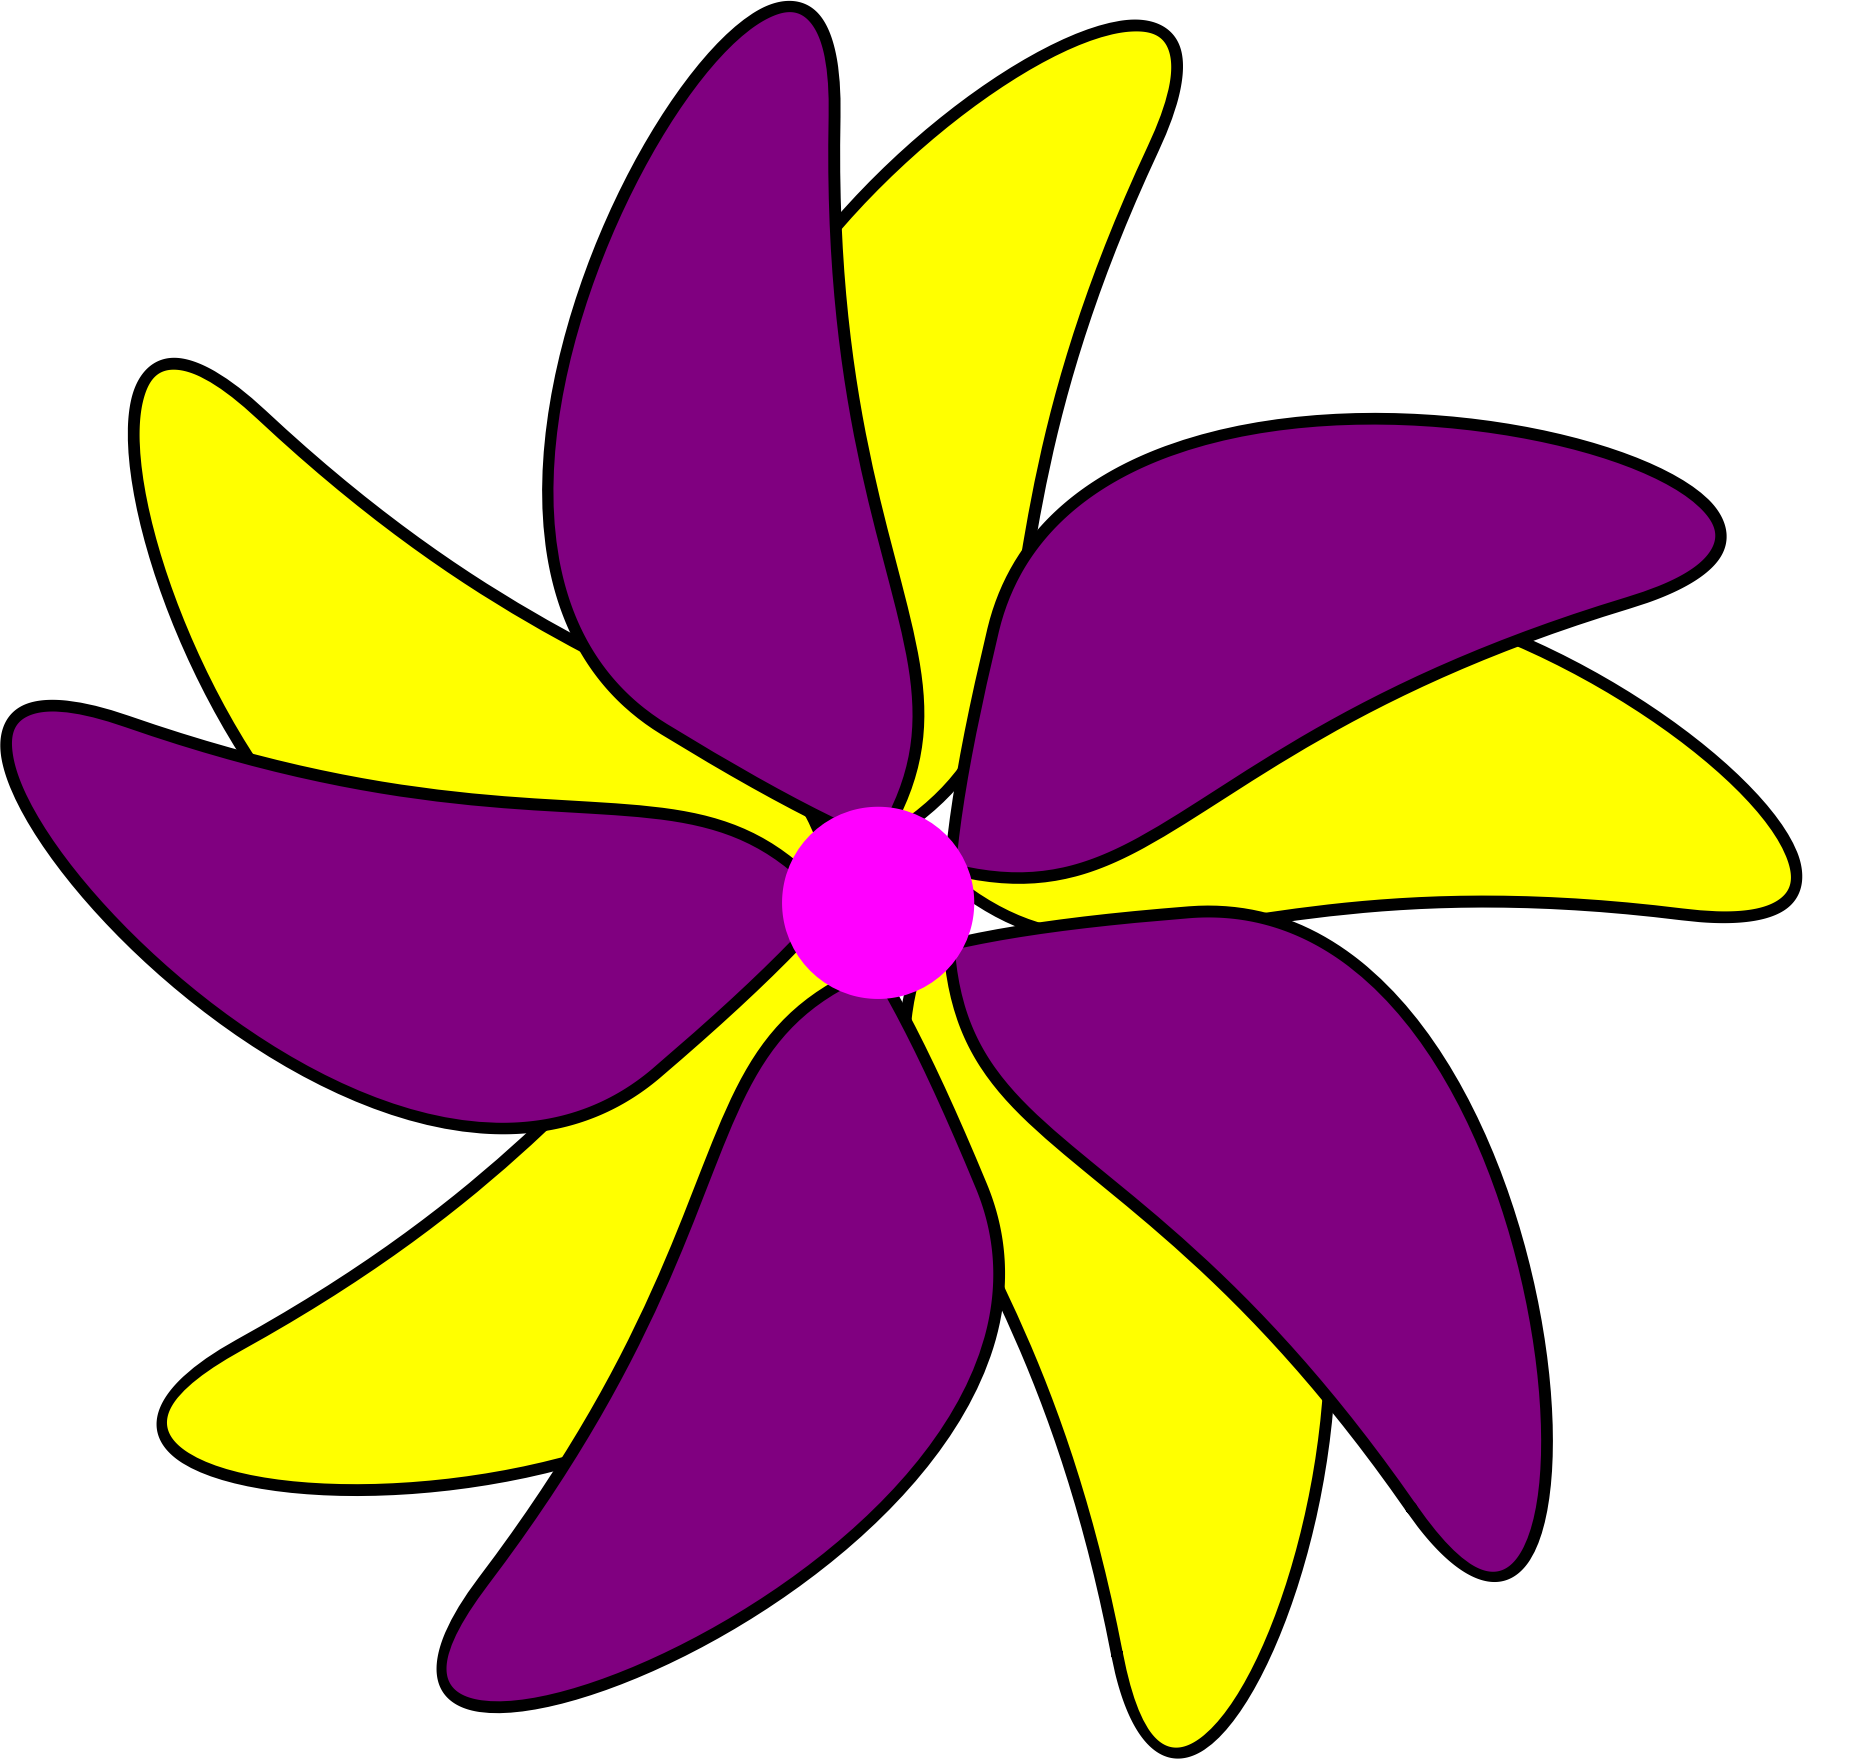 Clipart of a flower clip freeuse Clipart - Flower - Purple and Yellow clip freeuse